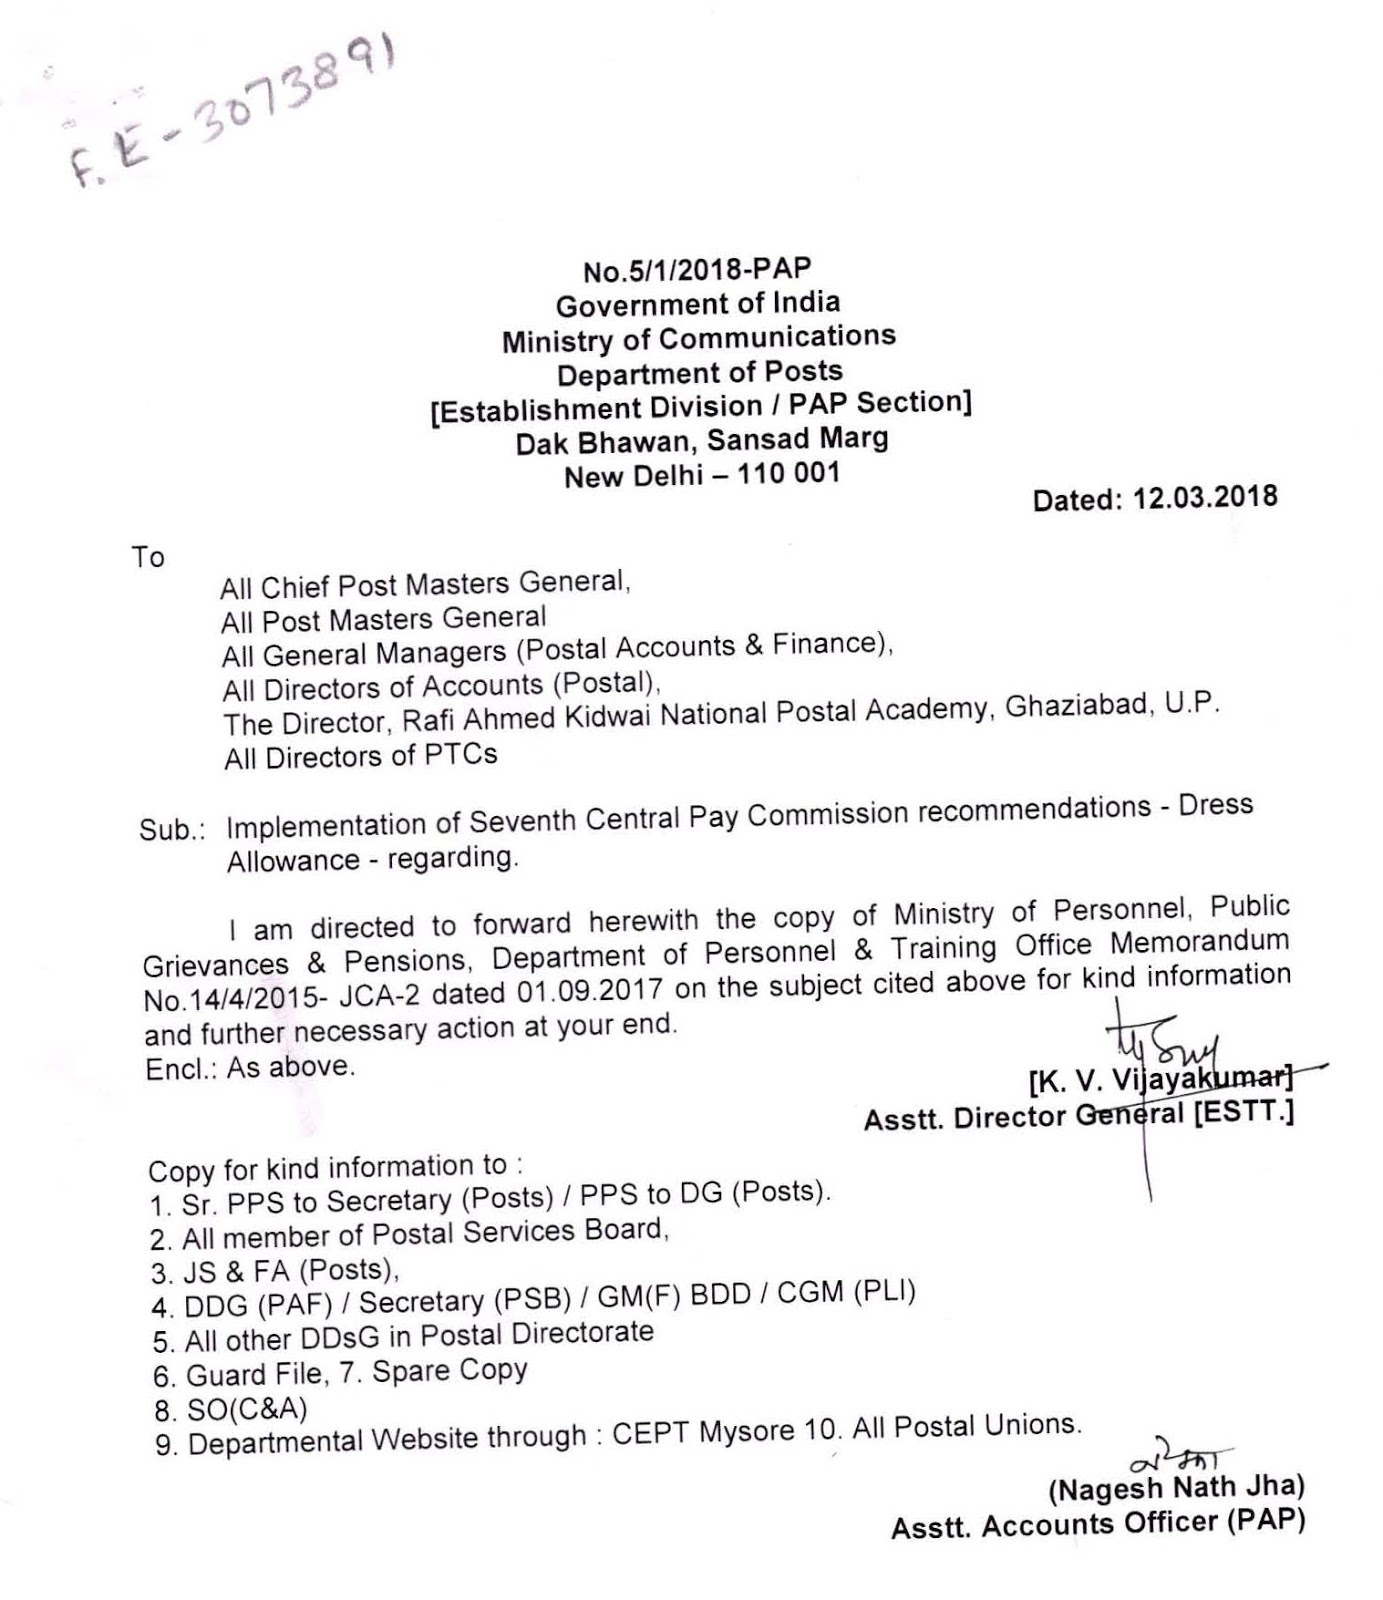 POST ORDER- IMPLEMENTATION OF 7TH CPC RECOMMENDATIONS